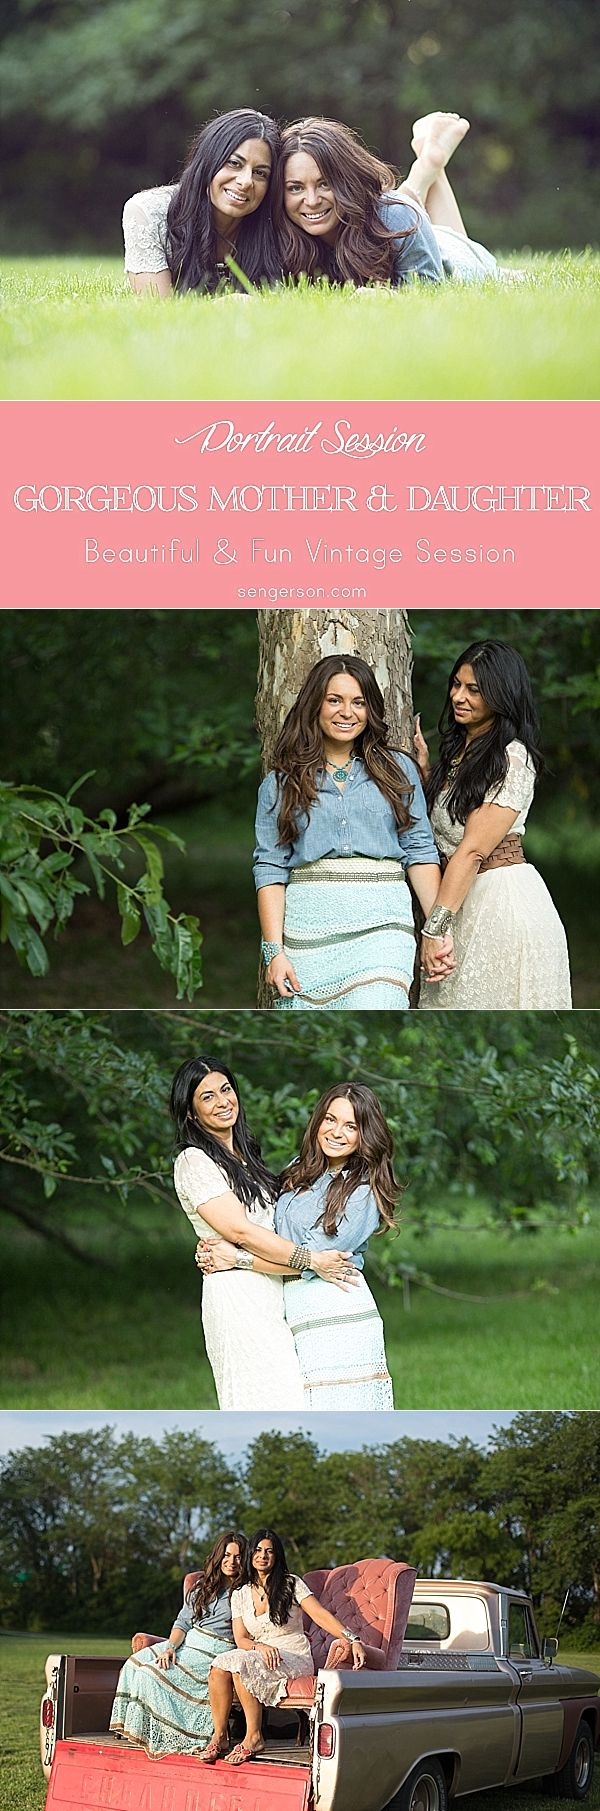 mother daughter photography session with a vintage feel - love how this session turned out by this amazing photographer!